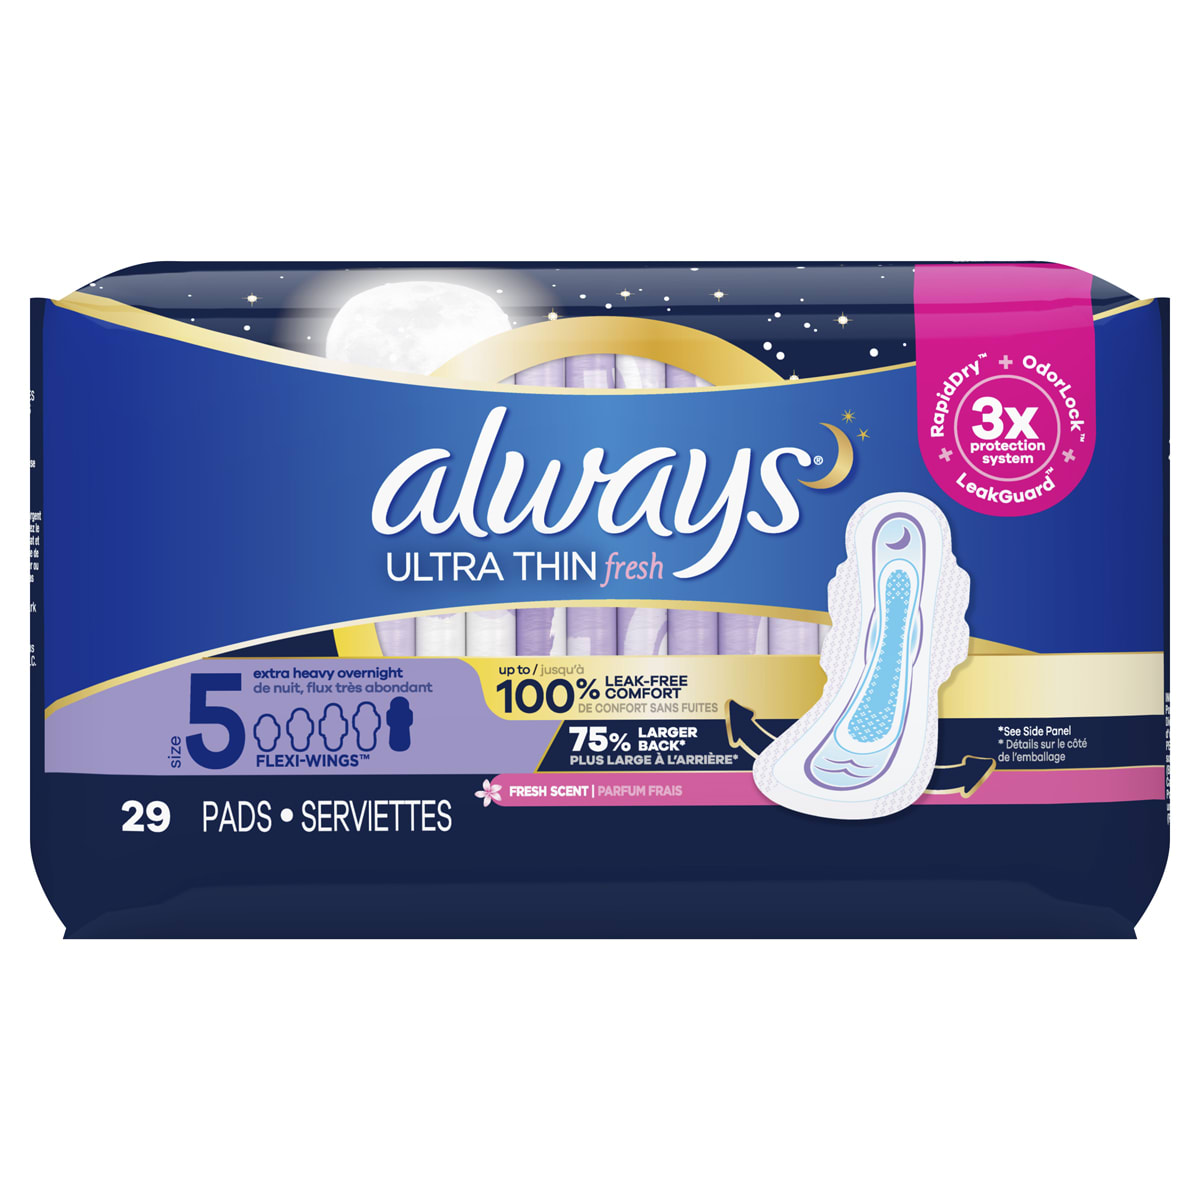 Ultra Thin Pads Unscented Extra Heavy Overnight with Wings Scented